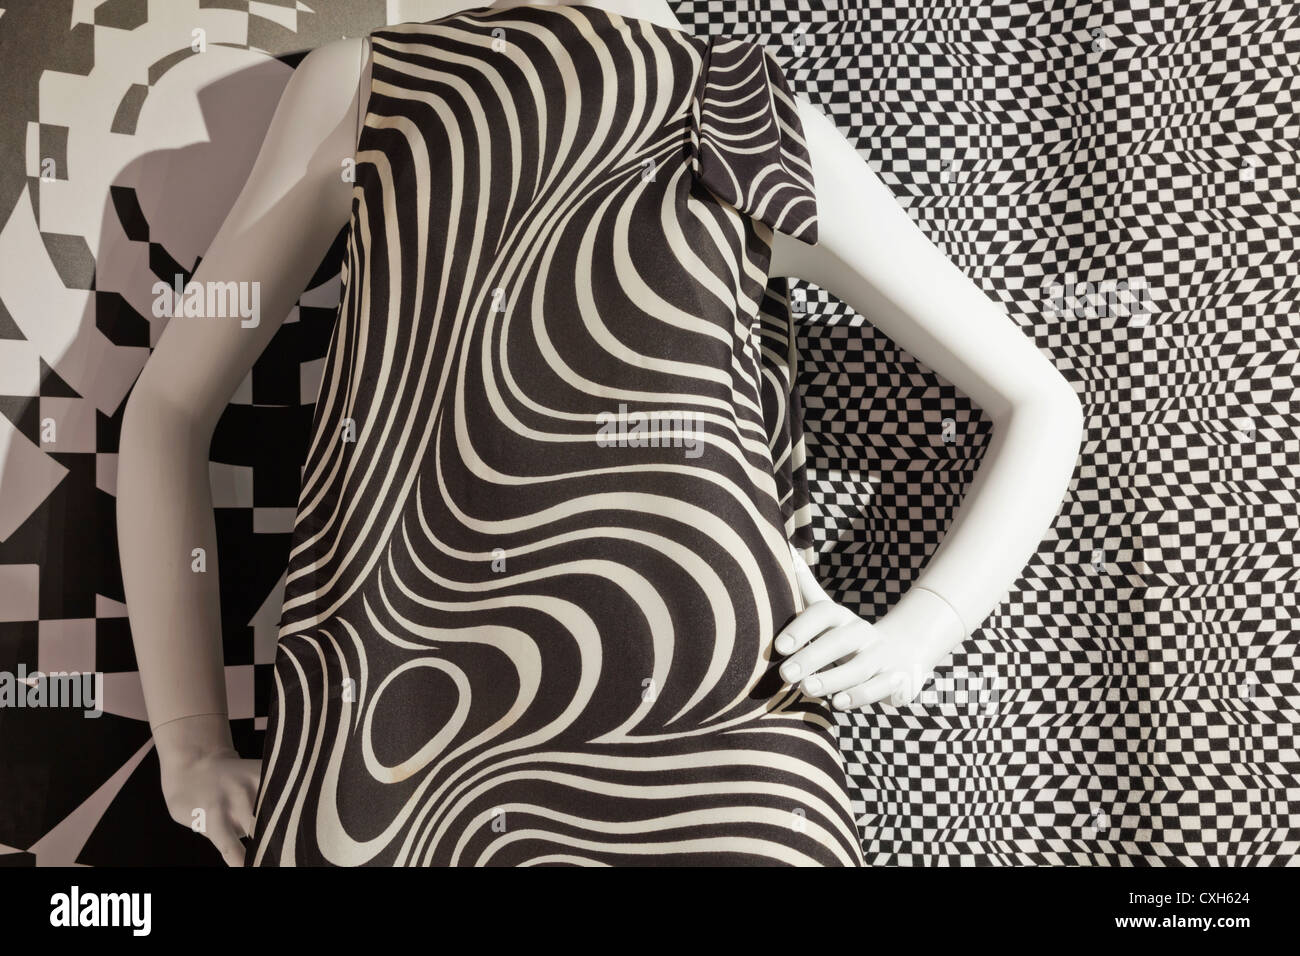 The Fashion and Textile Museum, Exhibit of Short Evening Dress 'Acropolis' from the Berkertex Collection - Stock Image